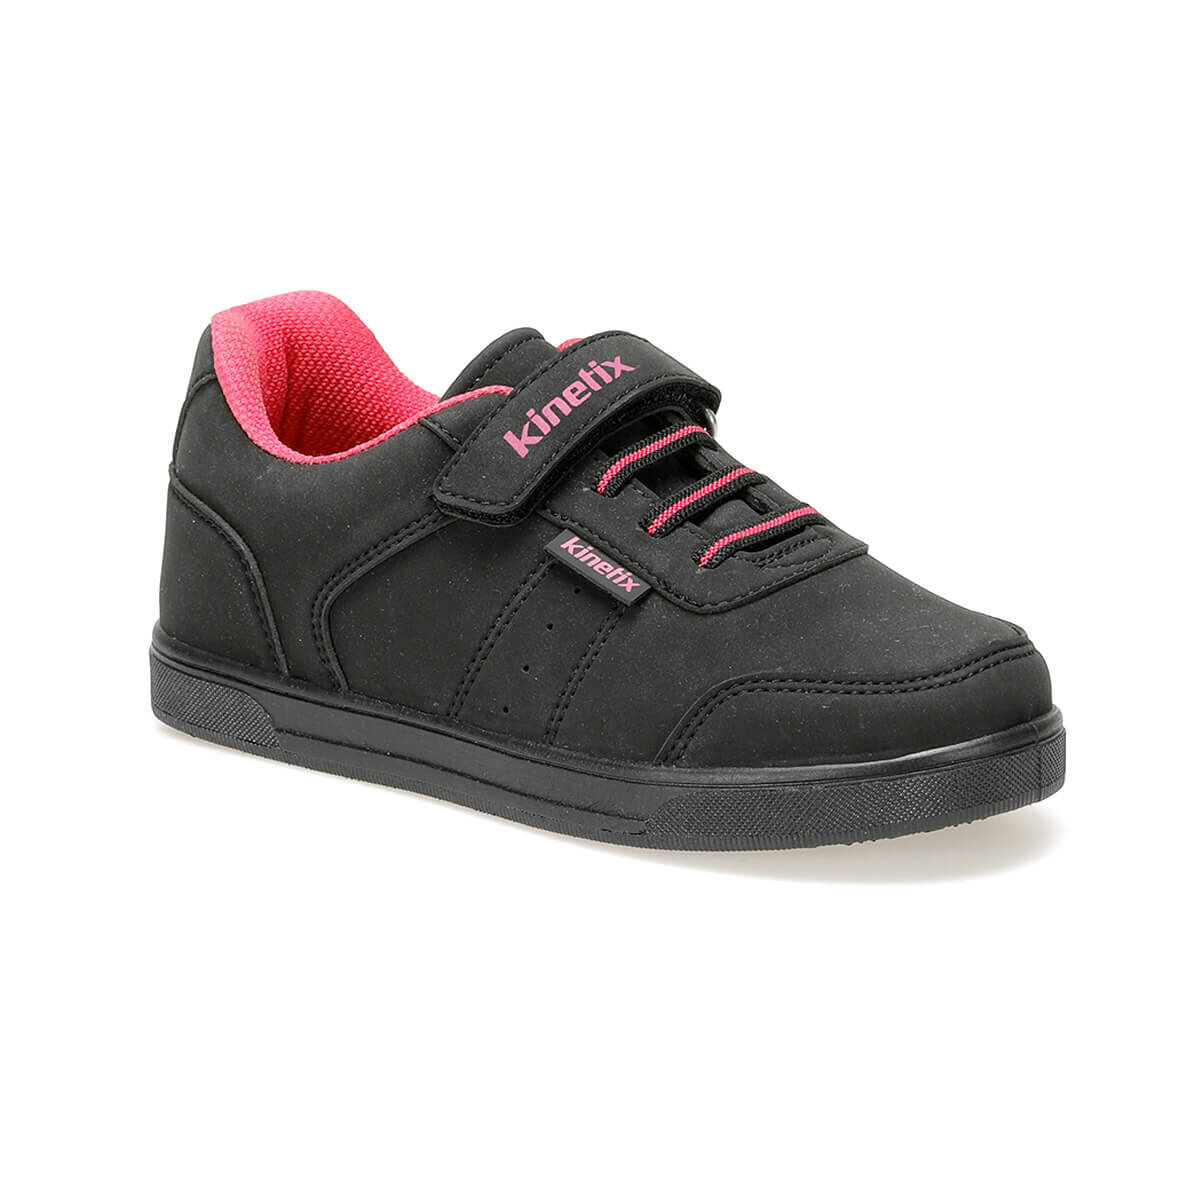 FLO PASEN 9PR Black Female Child Sneaker Shoes KINETIX